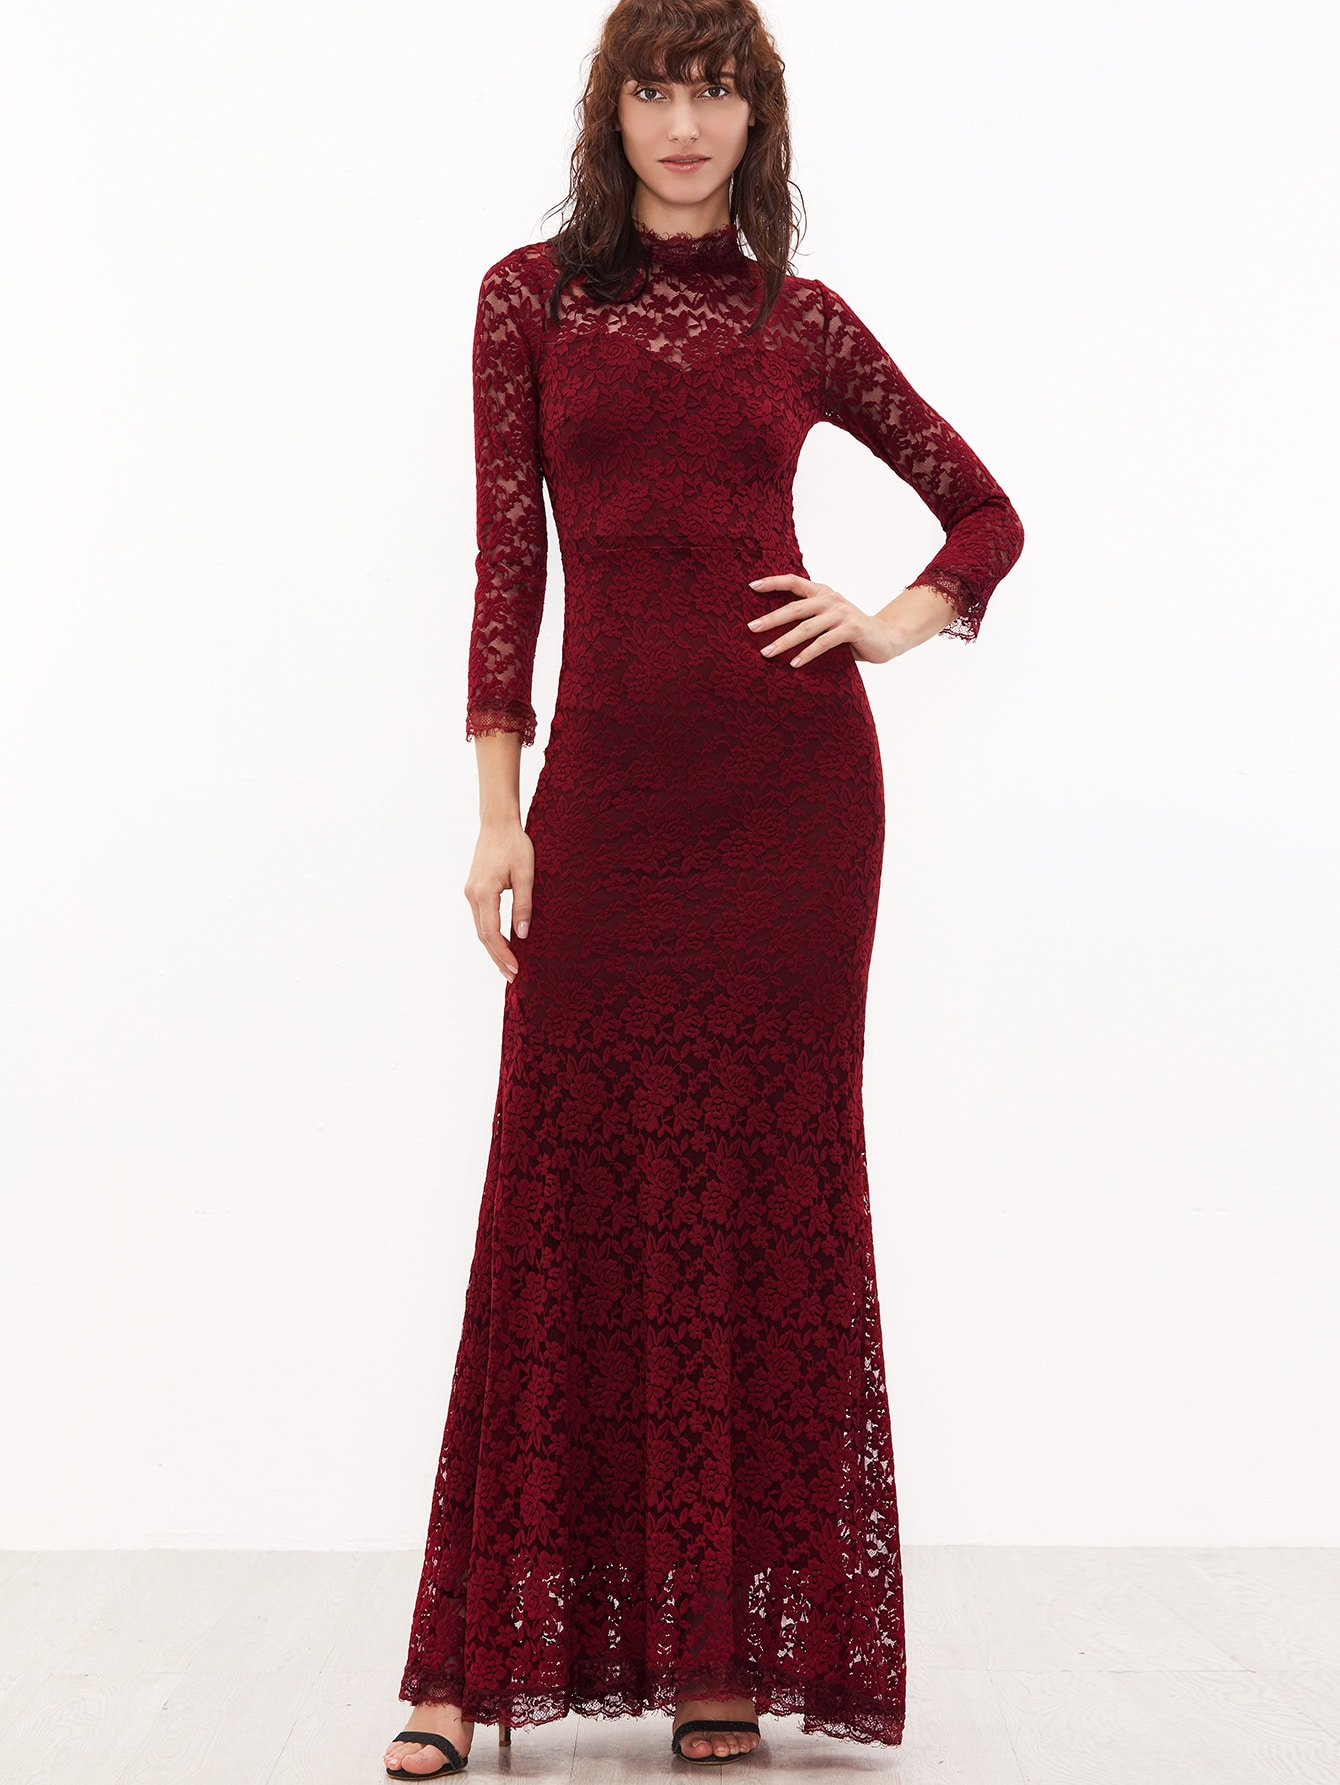 Burgundy Sheer Sleeve Floral Lace Fishtail DressBurgundy Sheer Sleeve Floral Lace Fishtail Dress<br><br>color: Burgundy<br>size: L,M,S,XS